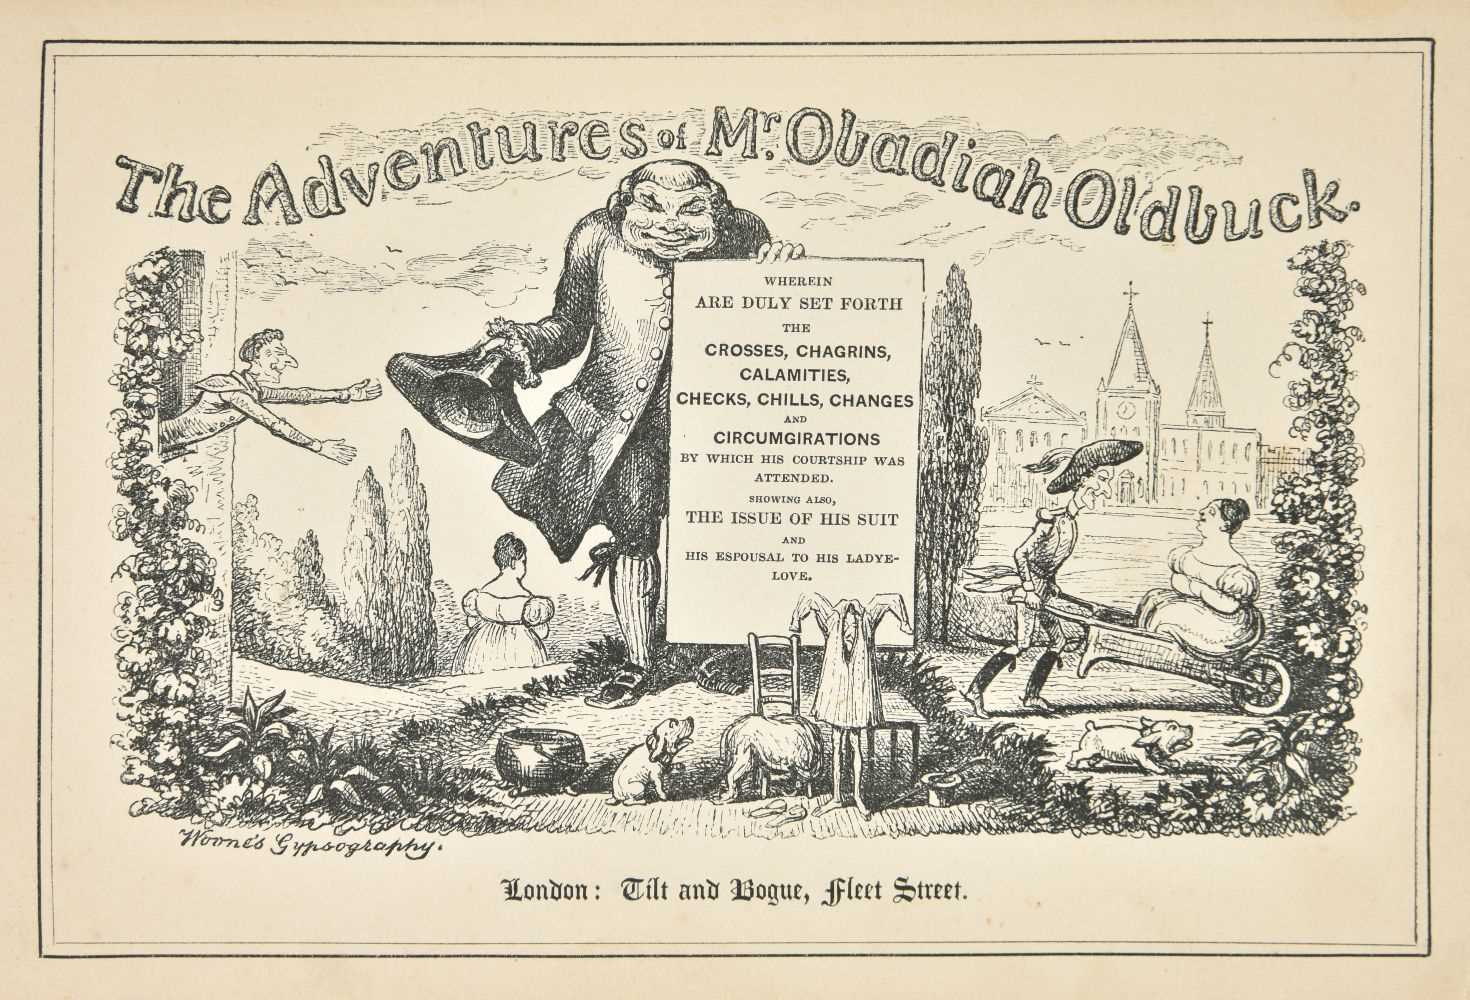 Lot 511-Topffer (Rodolphe). The Adventures of Mr Obadiah Oldbuck, 1st English edition, [1841]